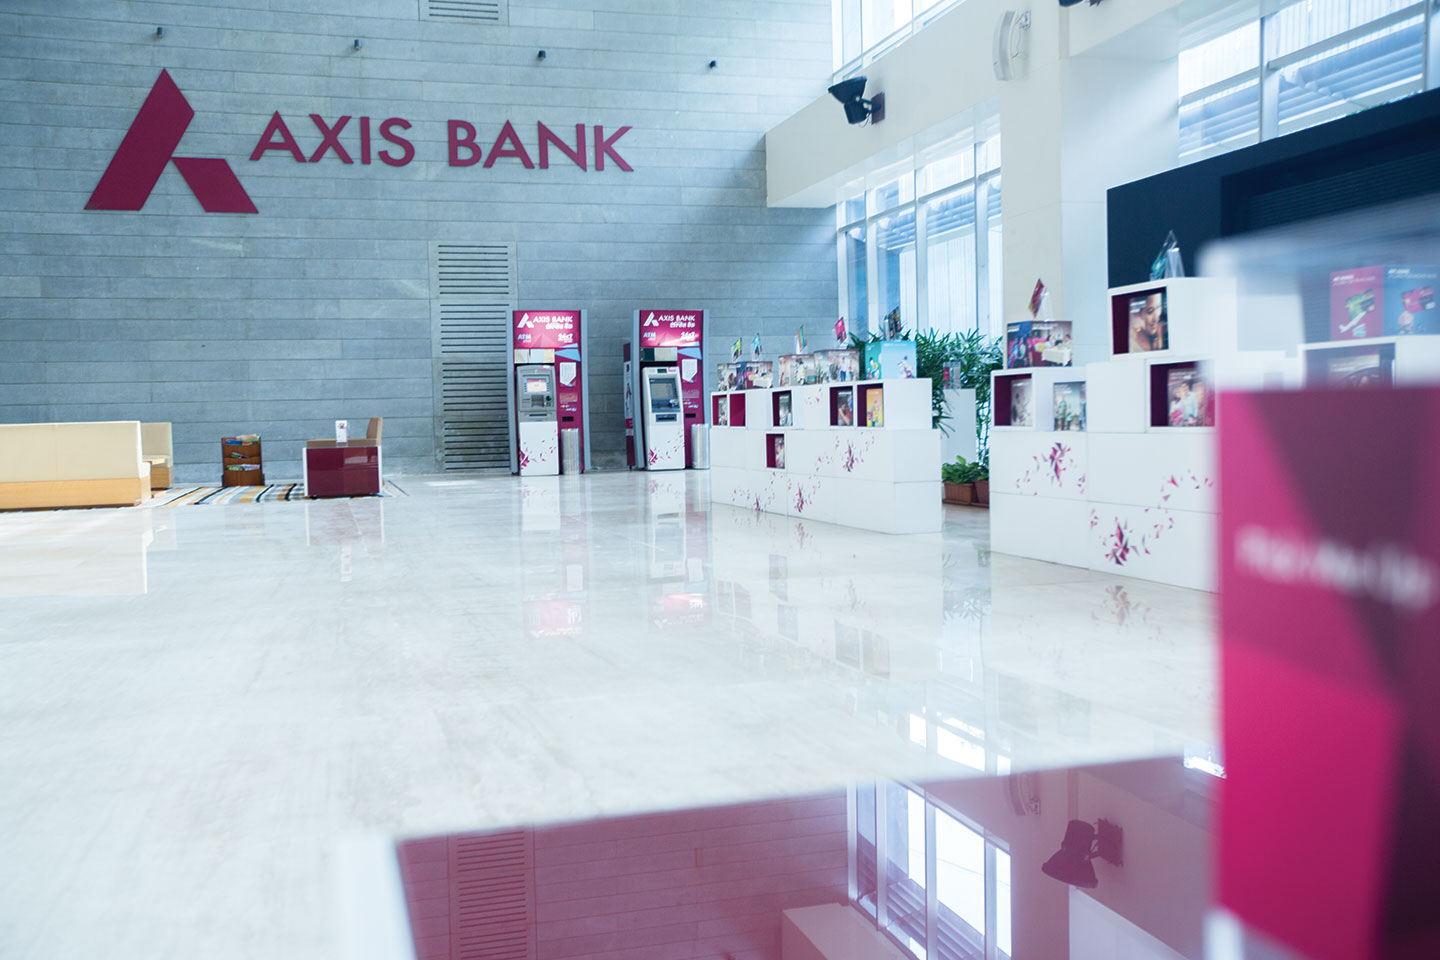 as per vision 2020 how much bankable population does axis bank aim to reach profitability